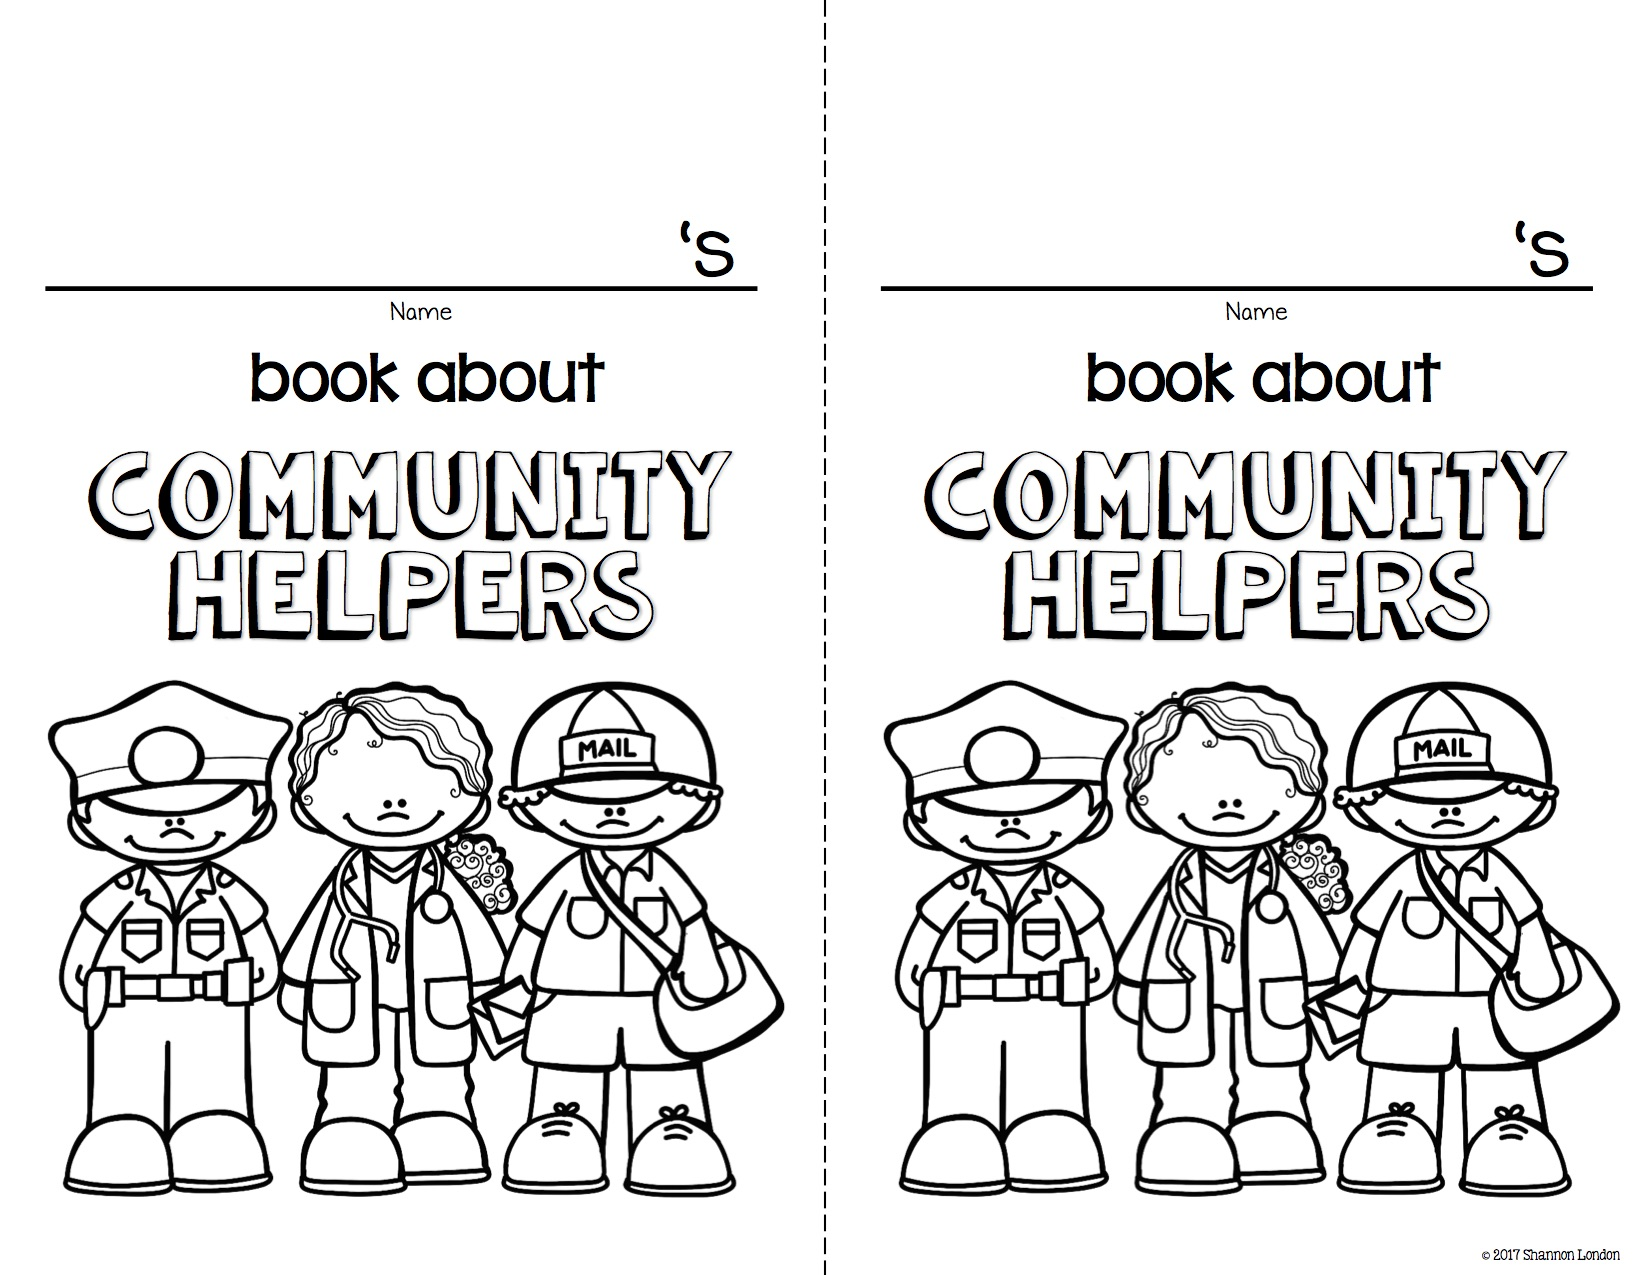 community helpers coloring pages | Community helpers, Community ... | 1275x1650